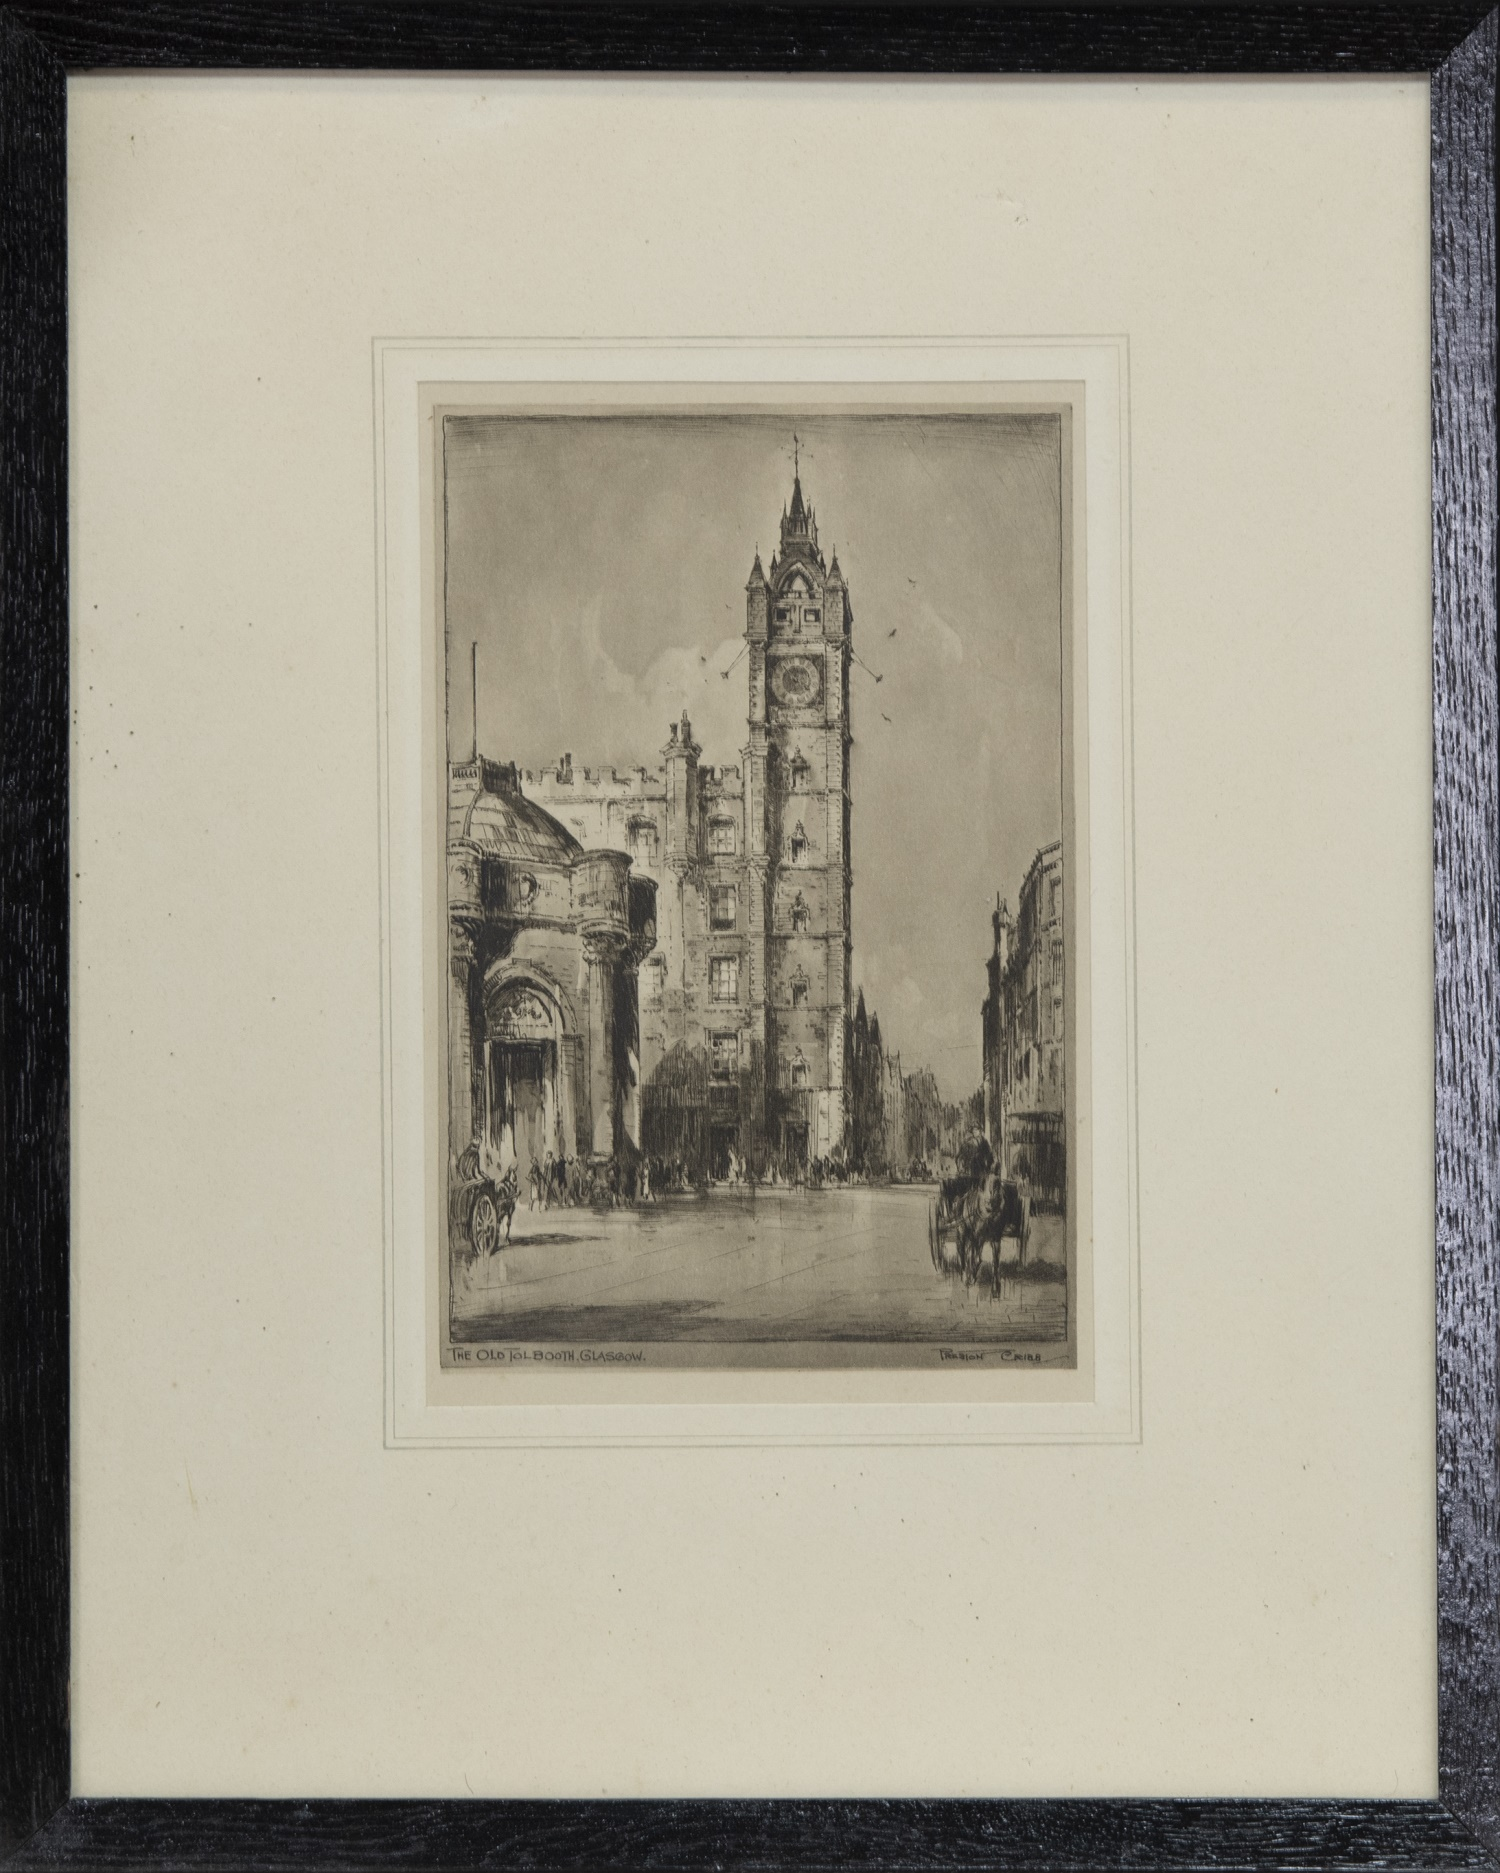 THE OLD TOLLBOOTH, GLASGOW, A PRINT BY PRESTON CRIBB